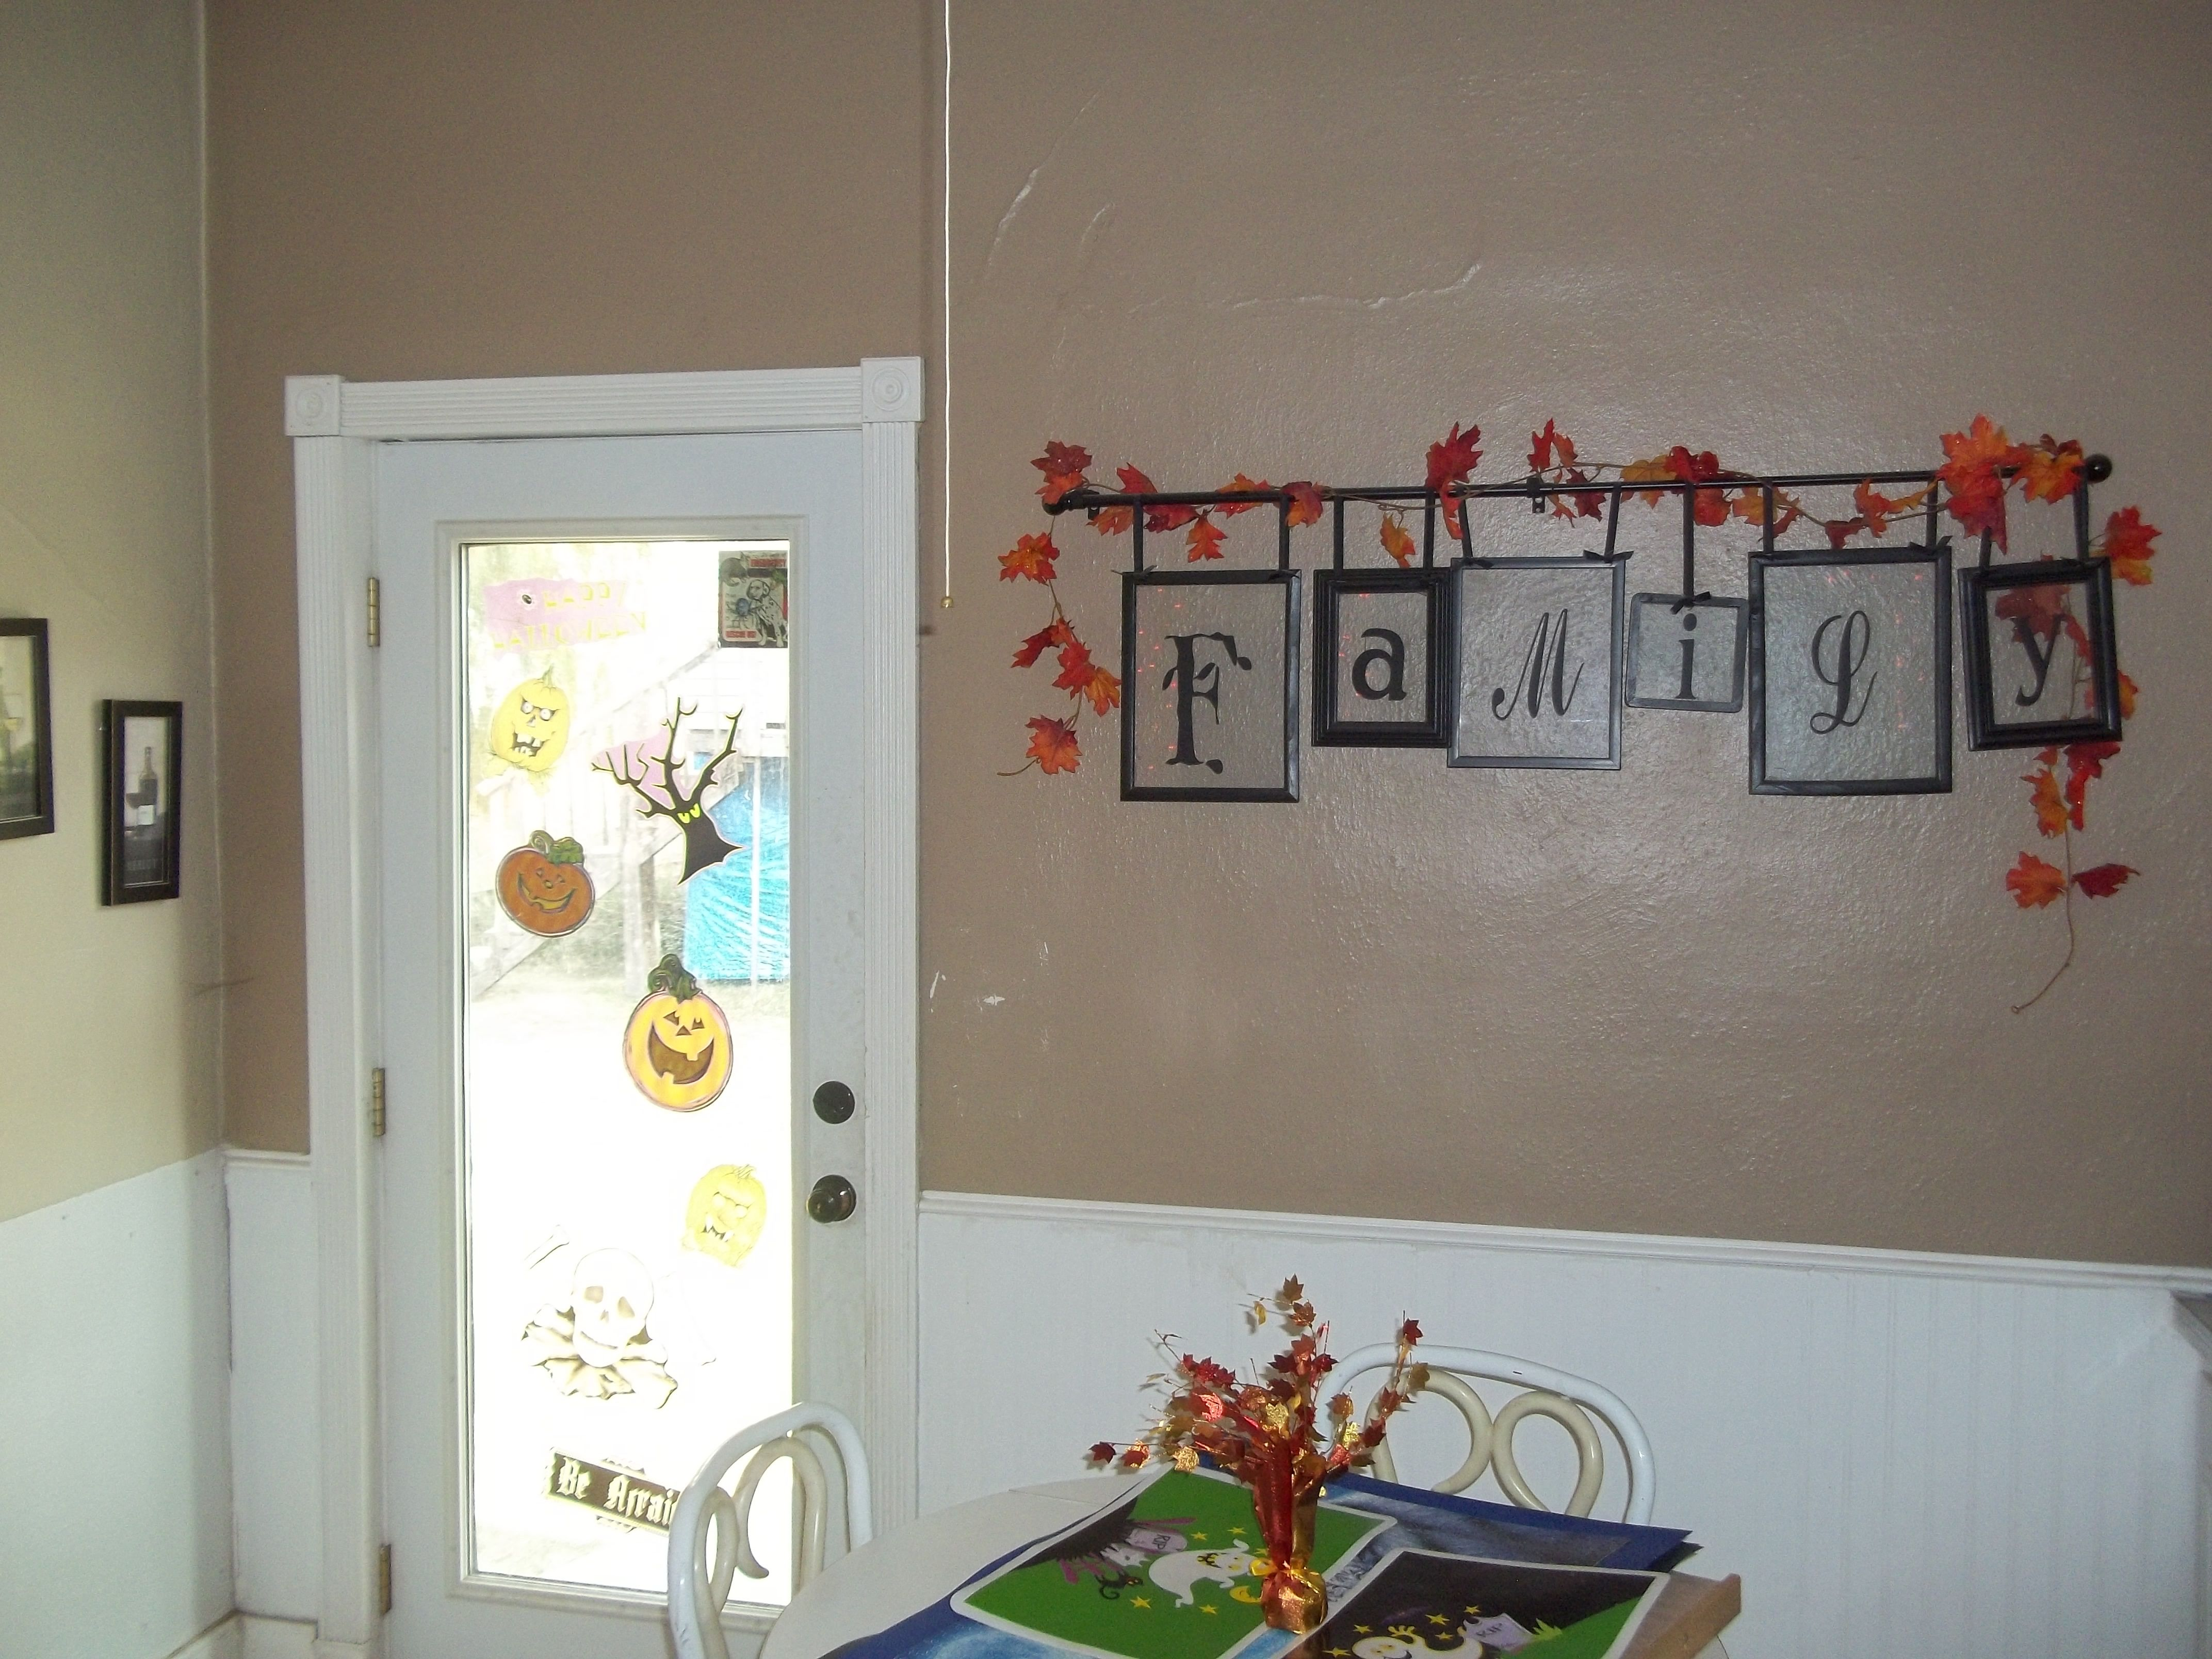 My house at Halloween